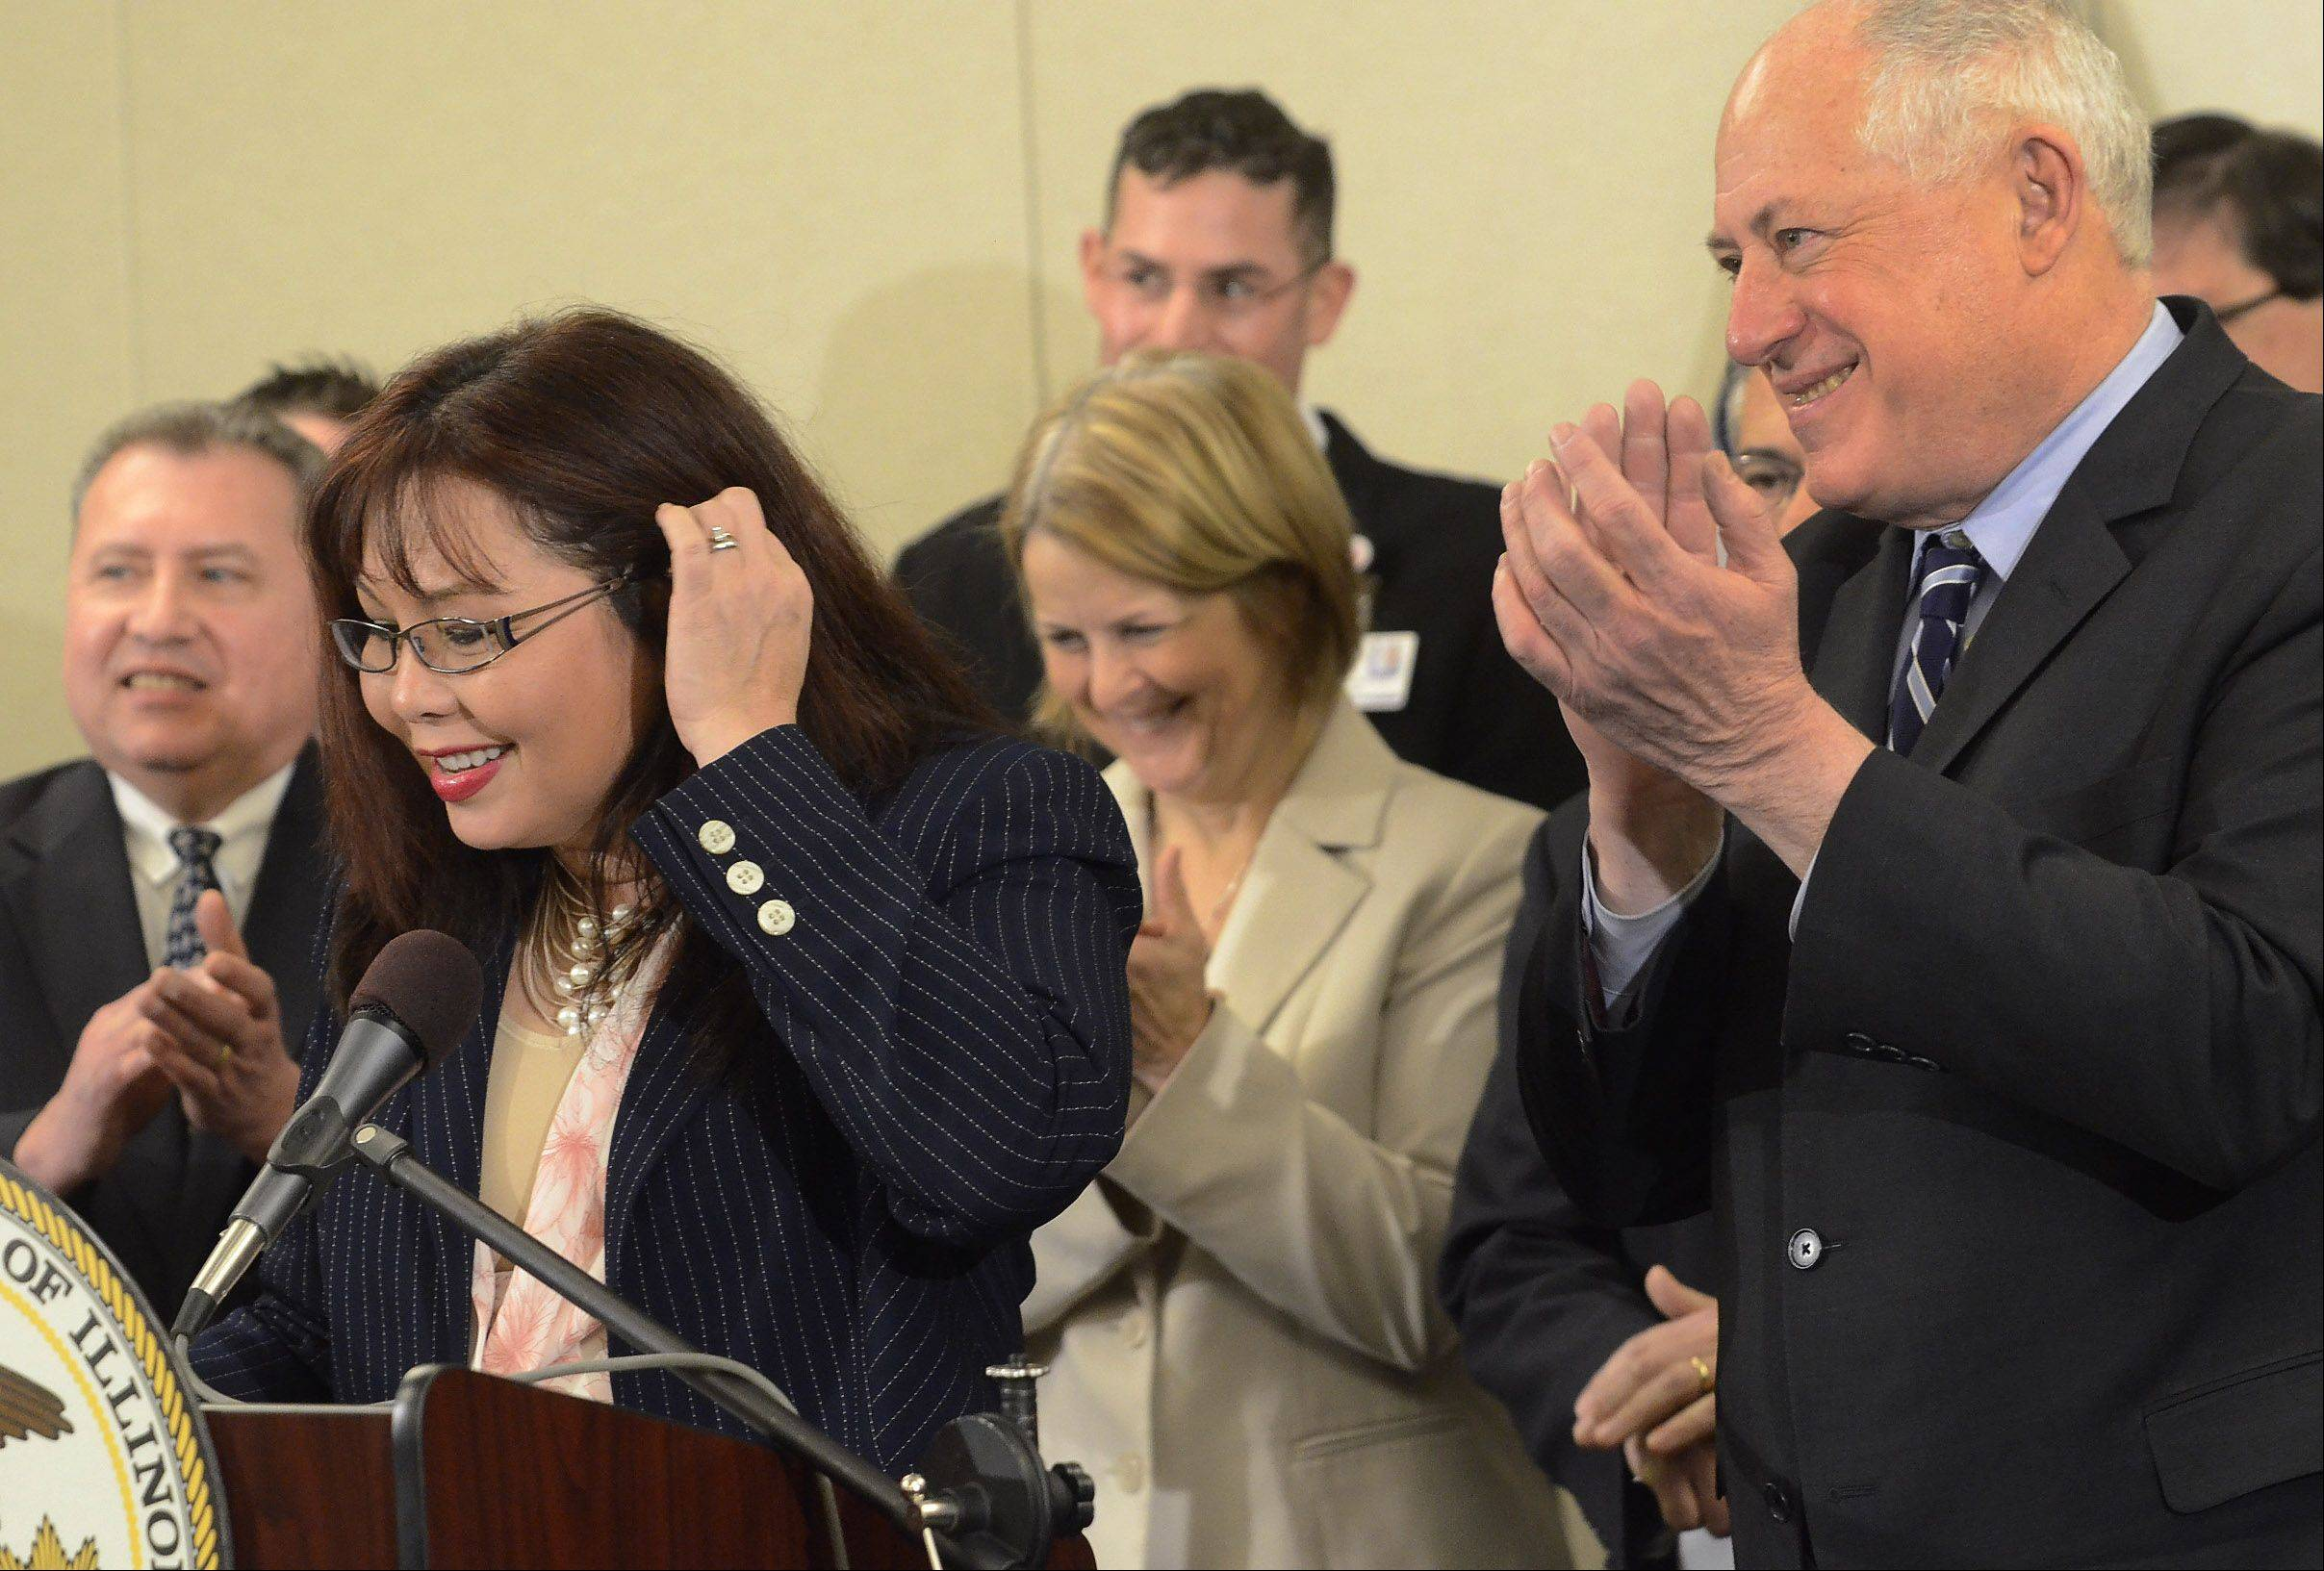 Gov. Pat Quinn and Congresswoman Tammy Duckworth announced Friday at Alexian Brothers Women & Children's Hospital a $68 million project to build a long-awaited full tollway interchange at Barrington Road and I-90 in Hoffman Estates.